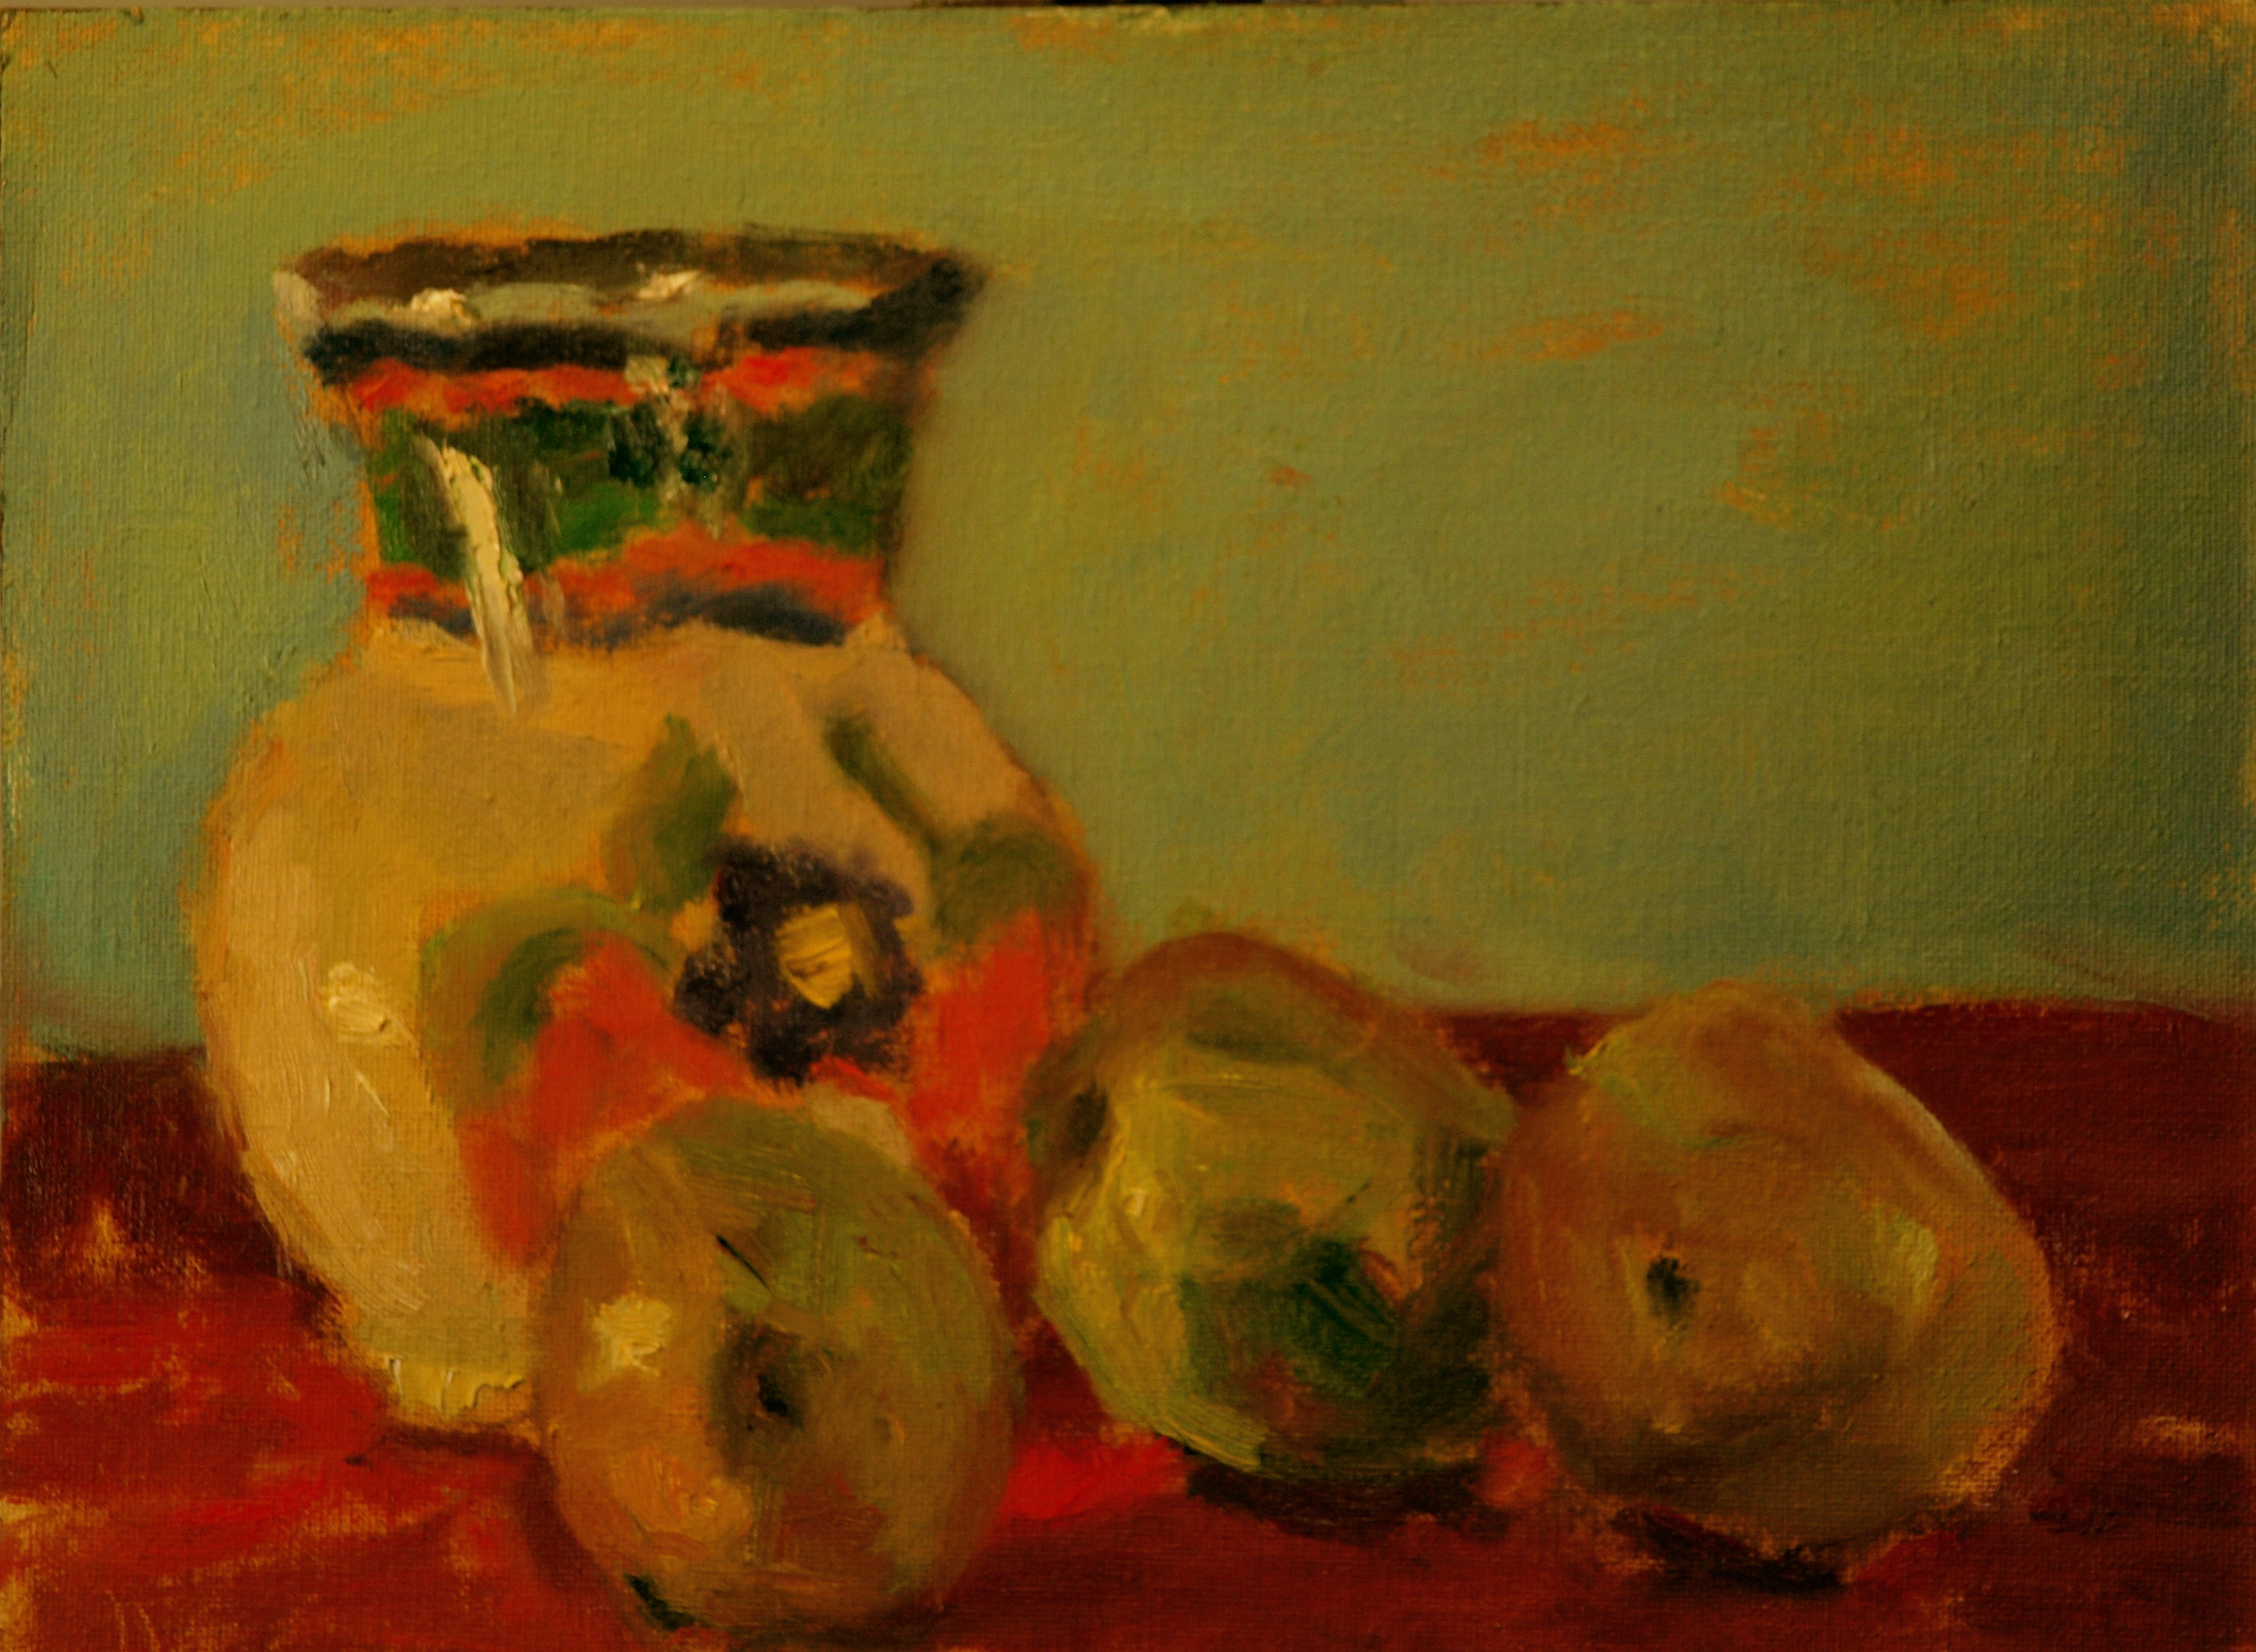 Pears and Water Pitcher, Oil on Canvas on Panel, 9 x 12 Inches, by Richard Stalter, $225